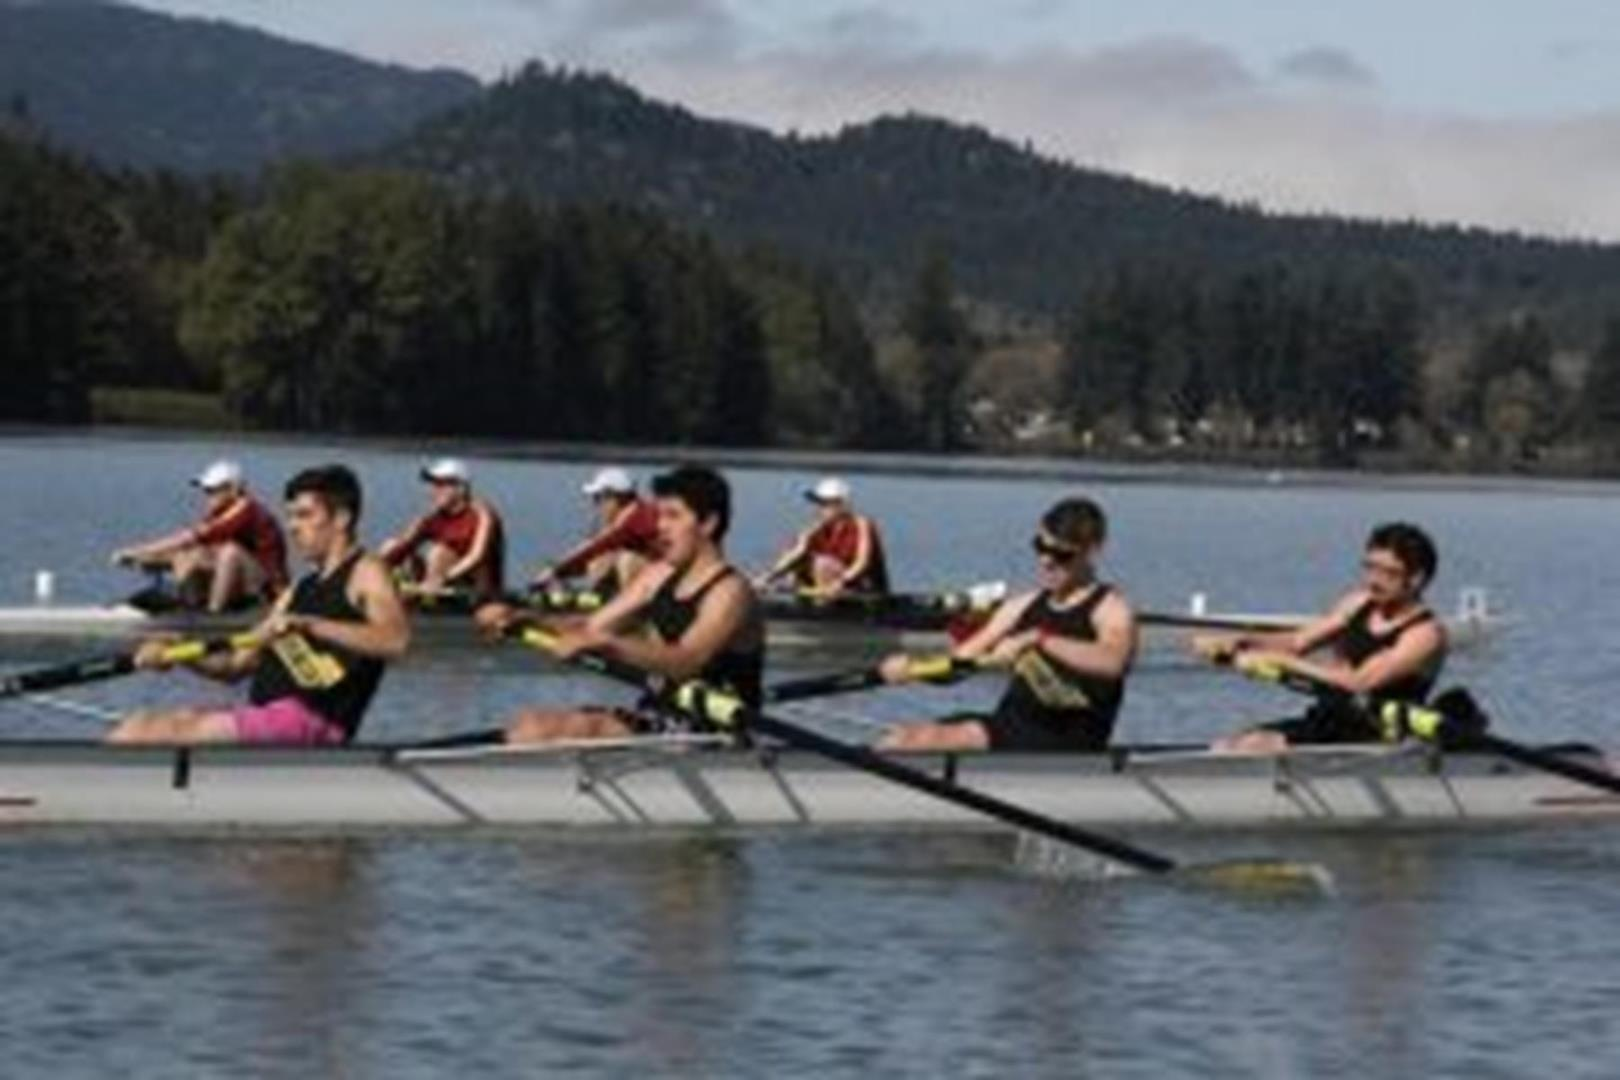 Covered Bridge Regatta on Dexter Lake 2014 - Dave Horton (17)